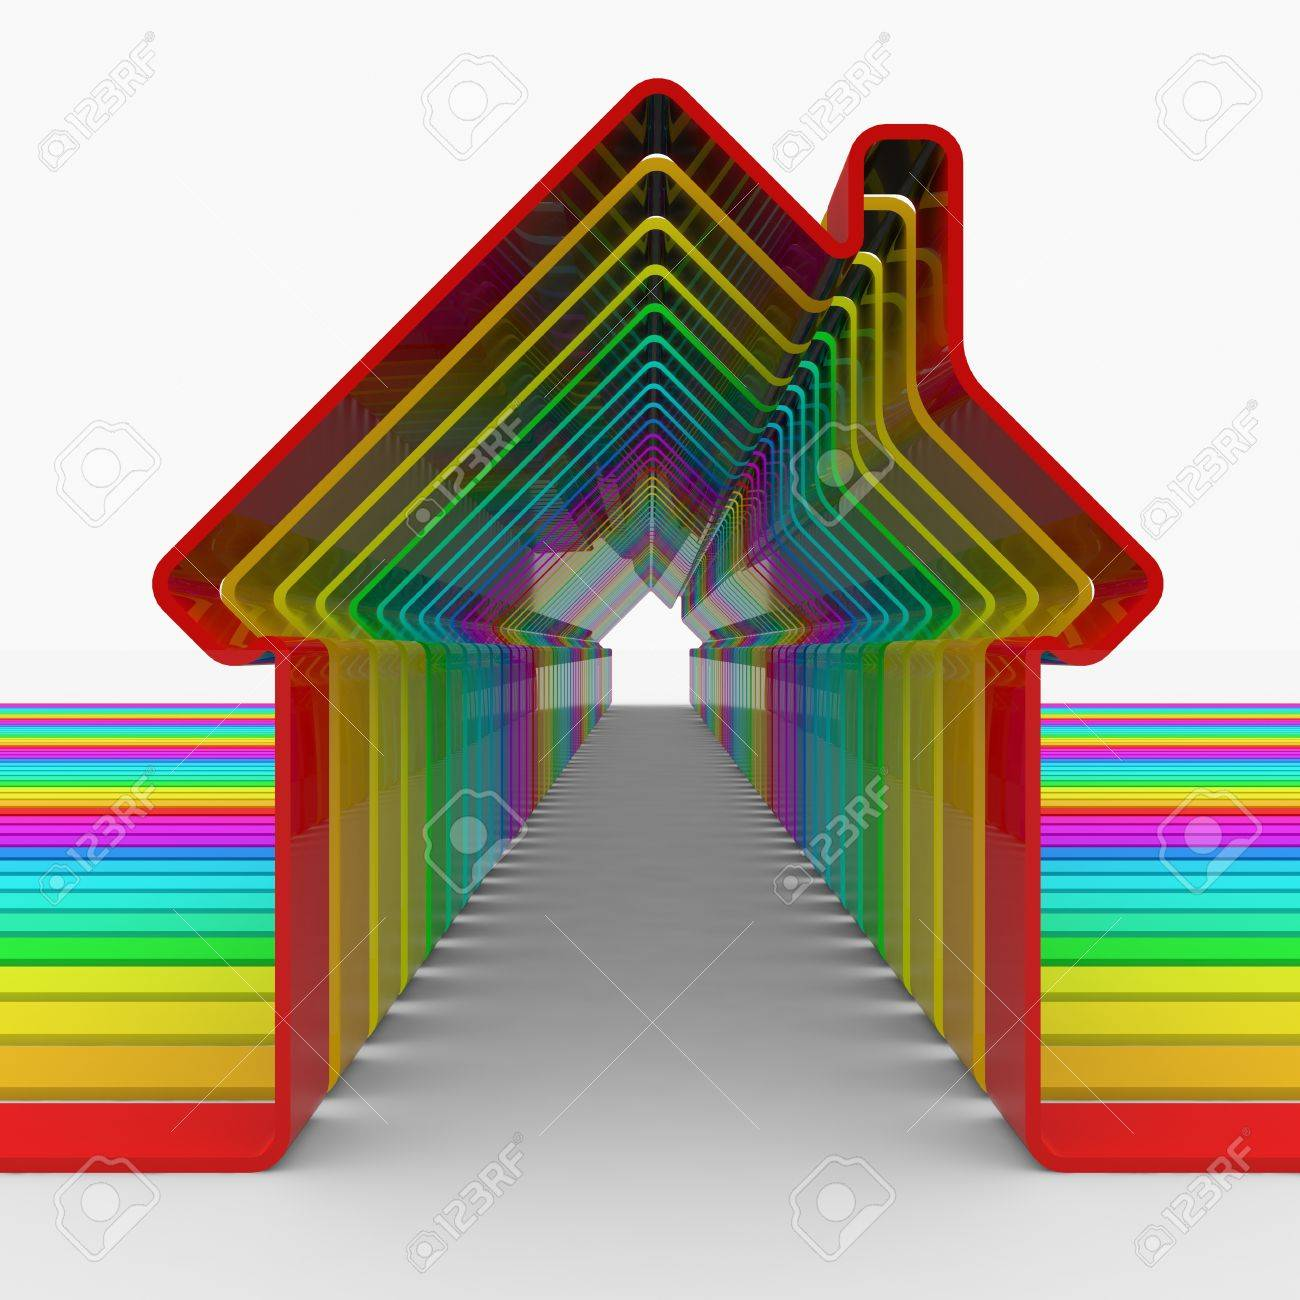 Colorful house shapes. Computer generated image. Stock Photo - 10590602